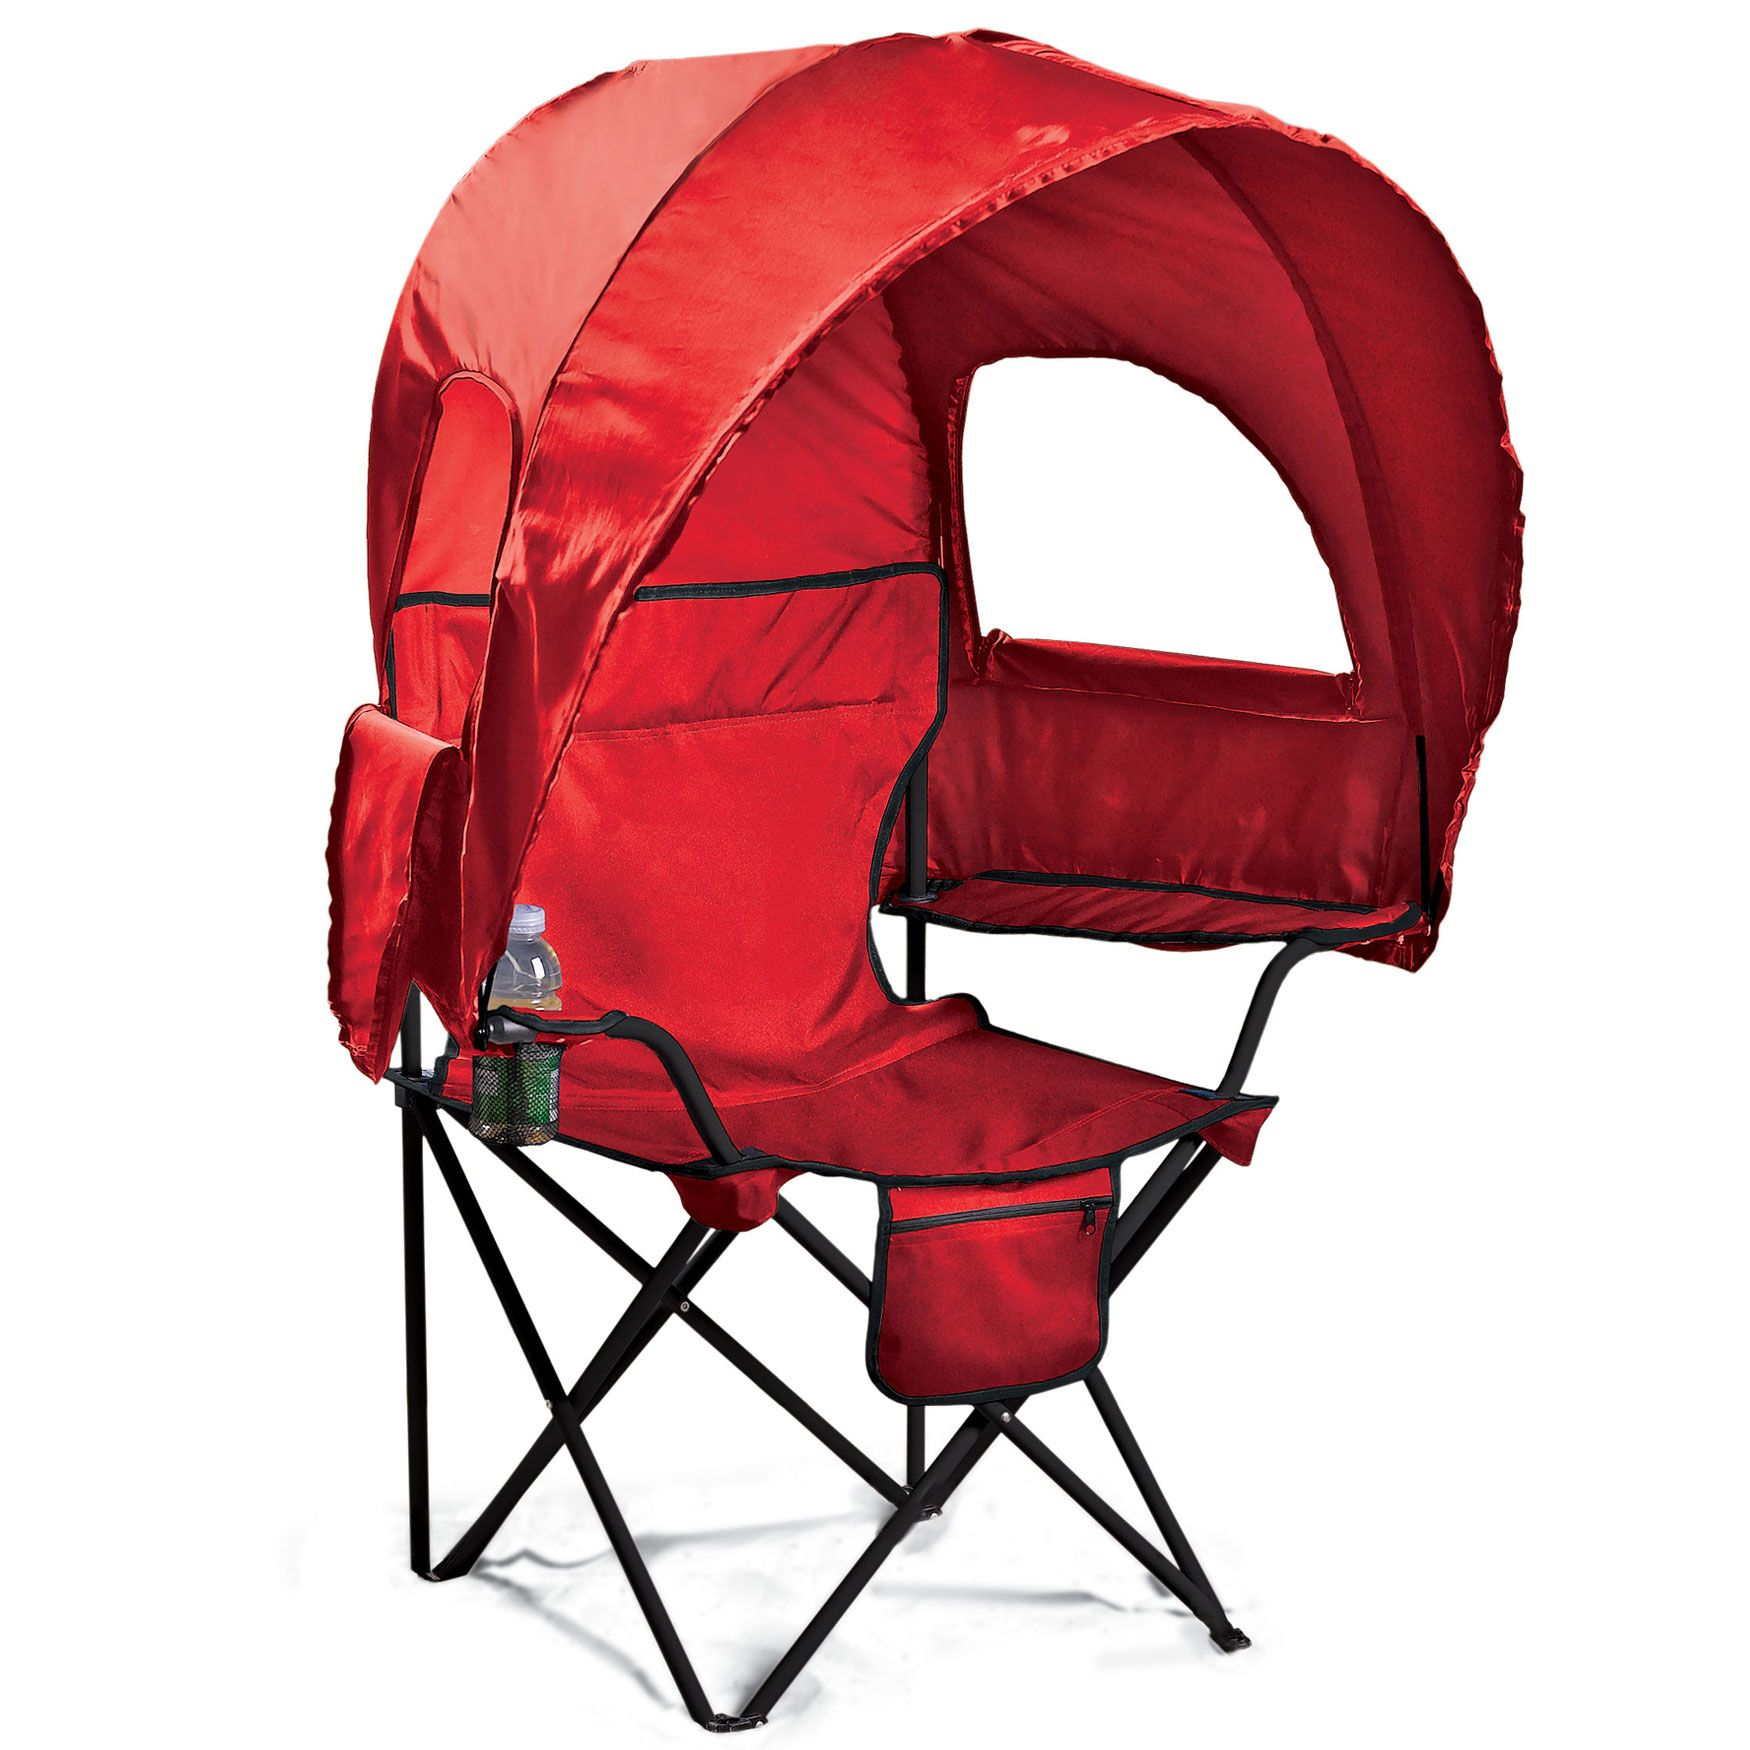 Camping Chair With Canopy Camp Chair With Canopy Patio Furniture Brylanehome Outside